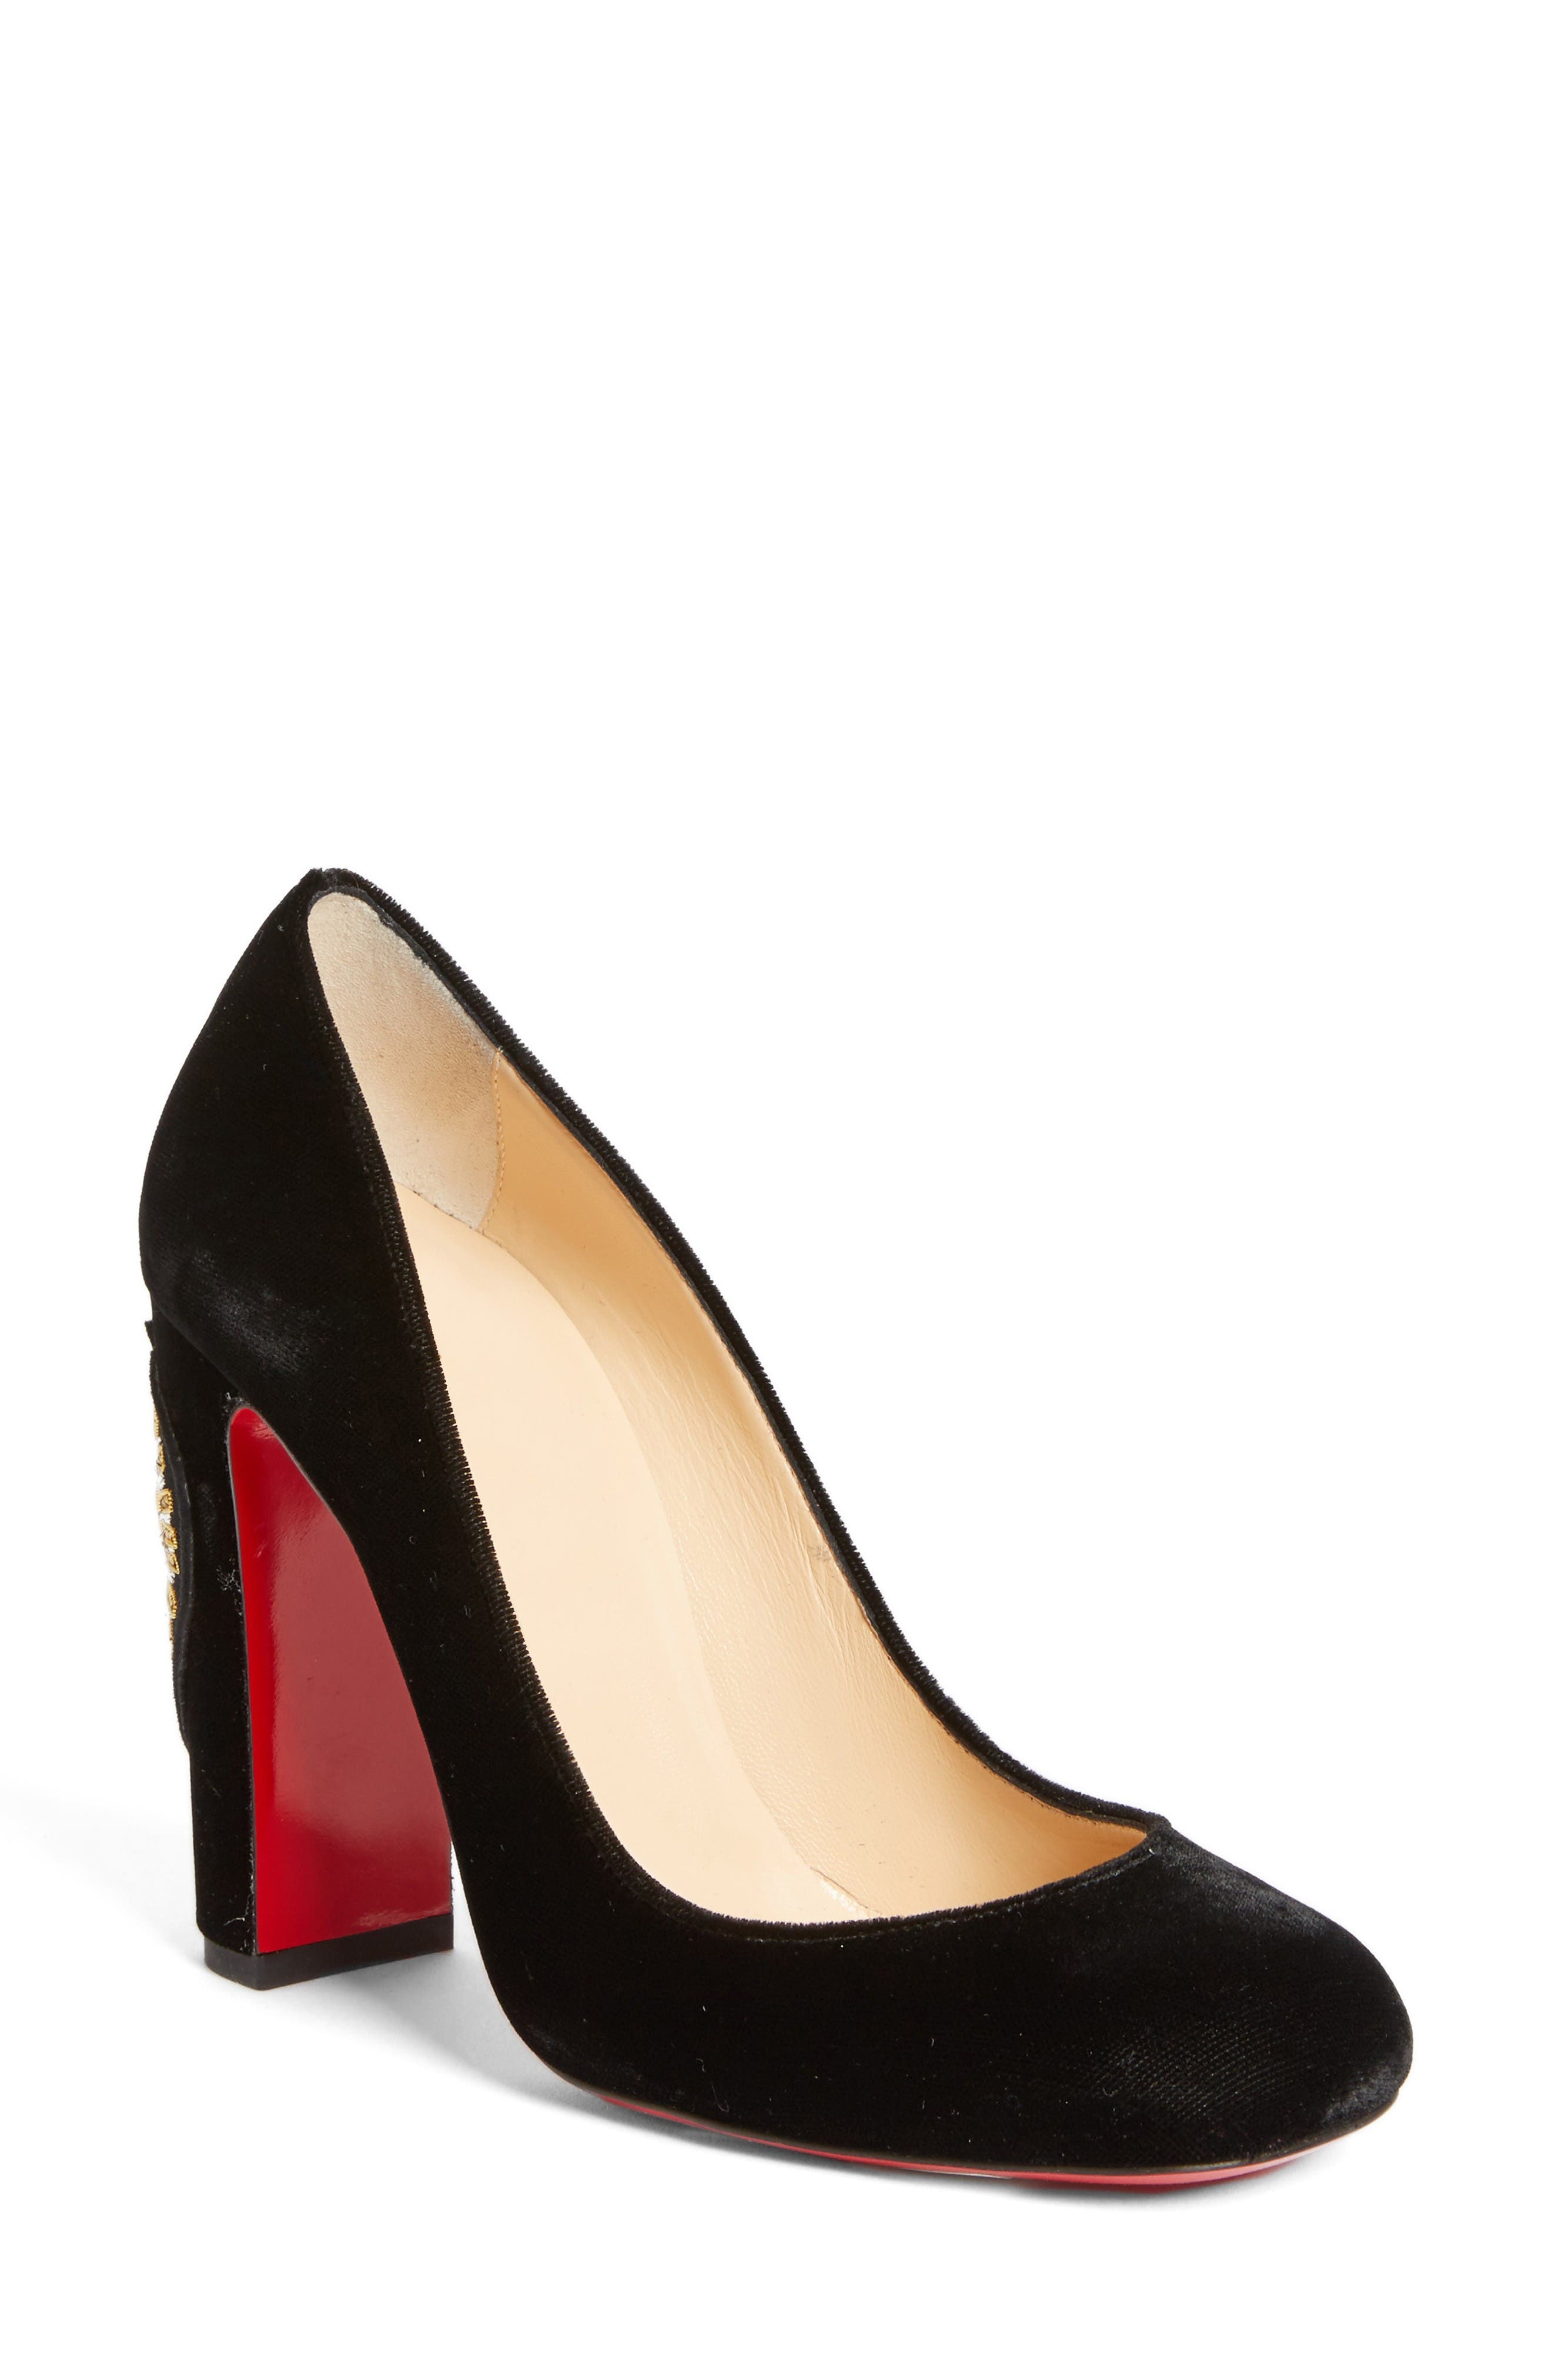 Christian Louboutin Cadrilla Corazon Pump (Women)